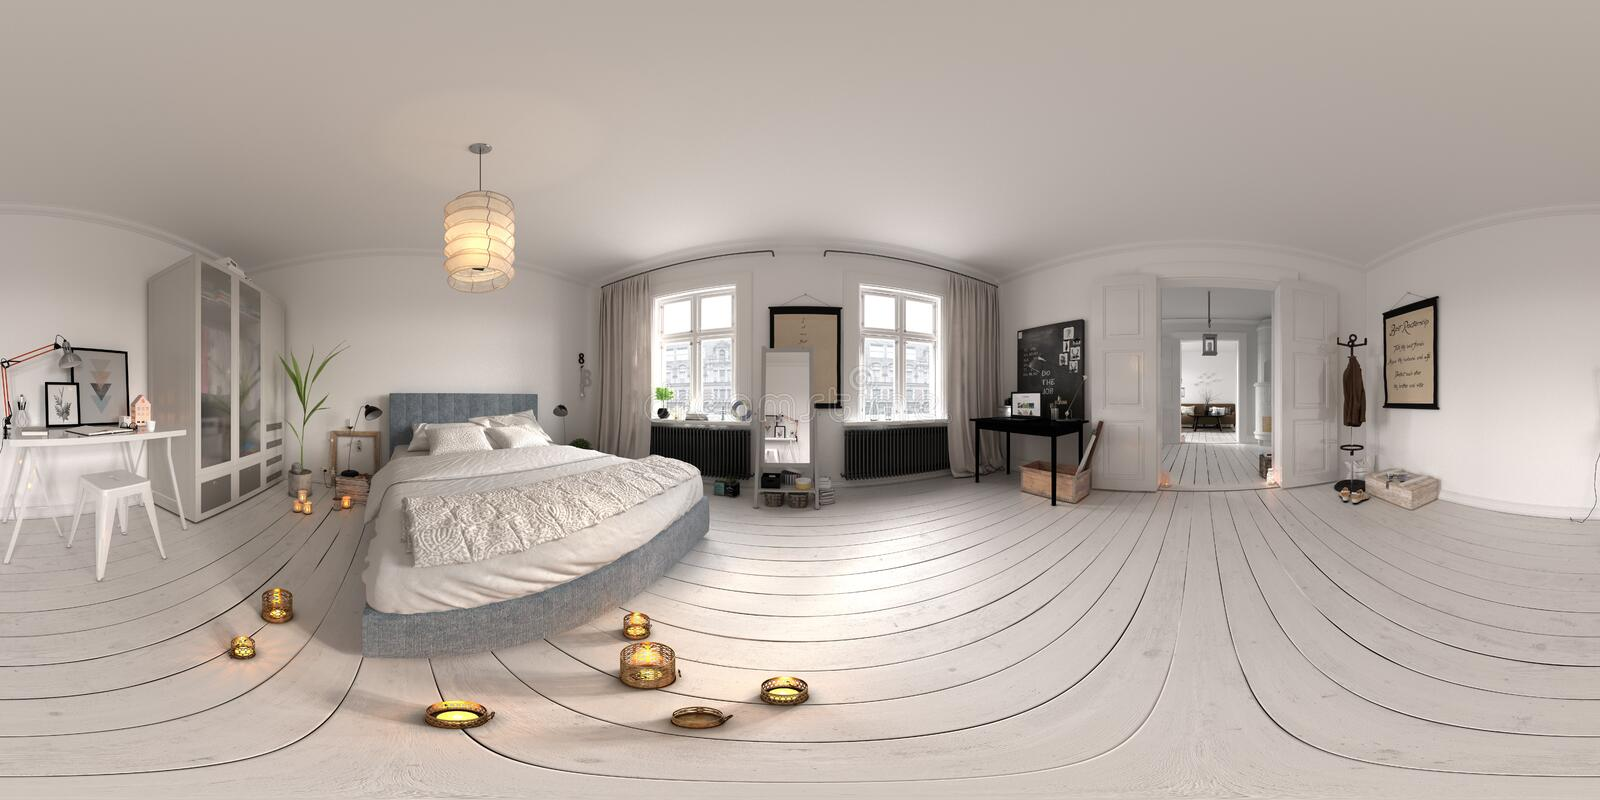 Spherical 360 panorama projection Bedroom interior 3D rendering royalty free illustration